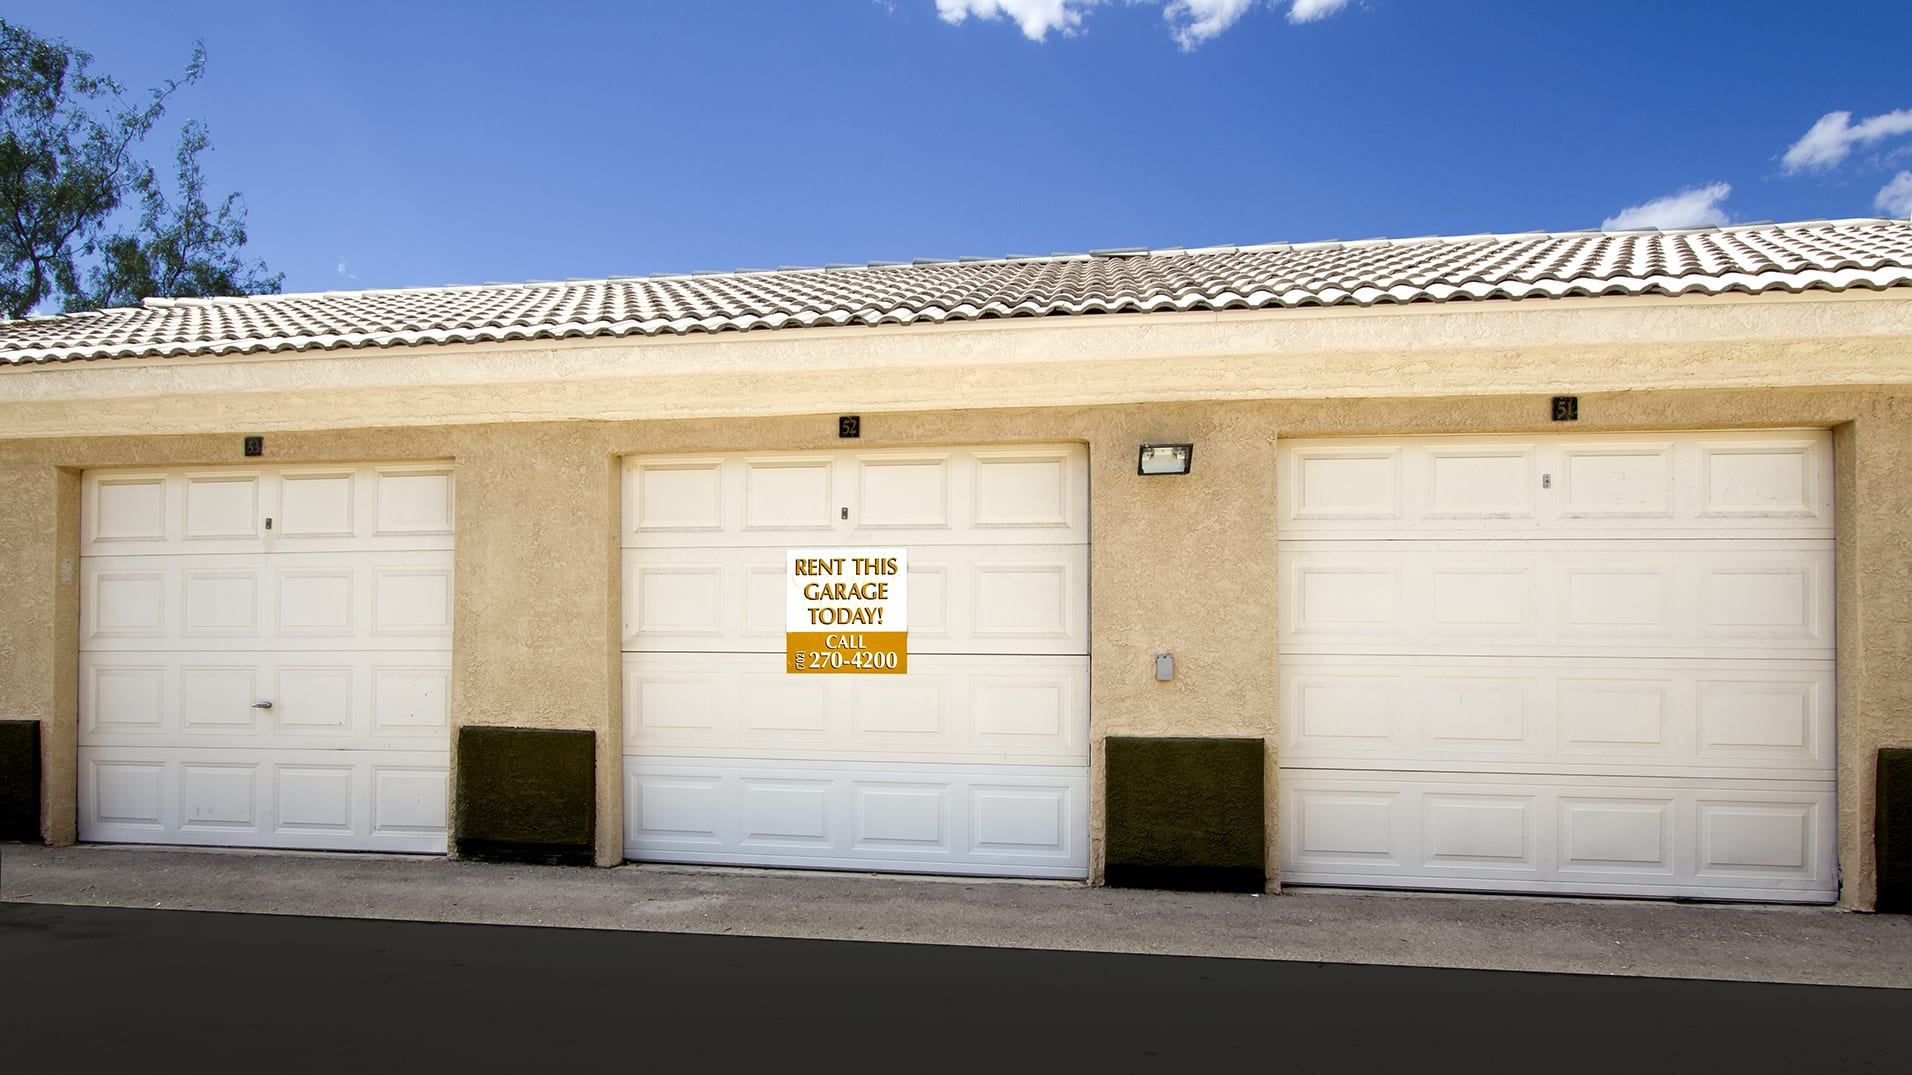 Detached garages at Summer Winds Apartments.